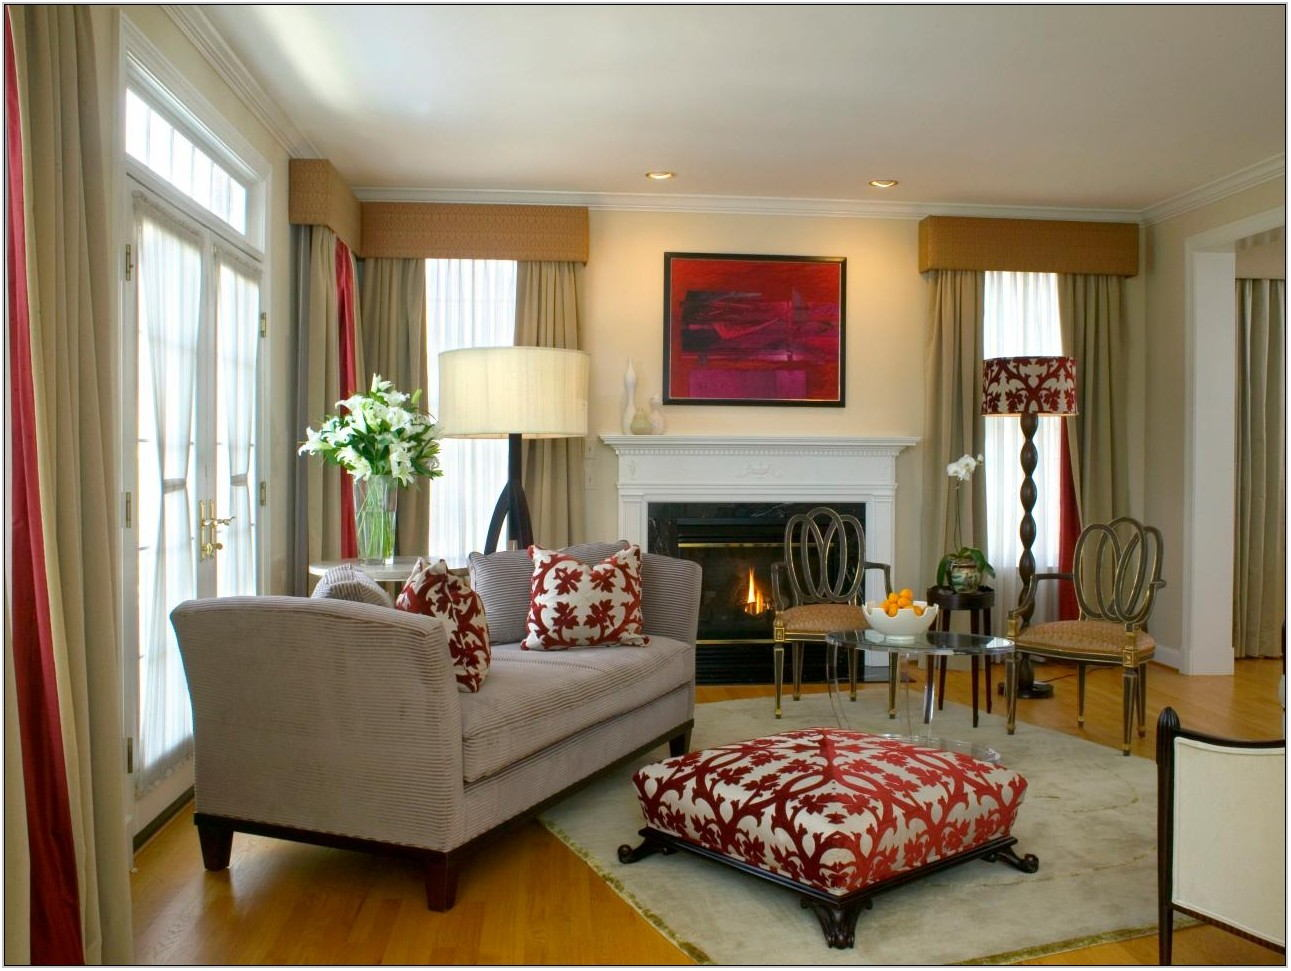 Living Room With Red Accents